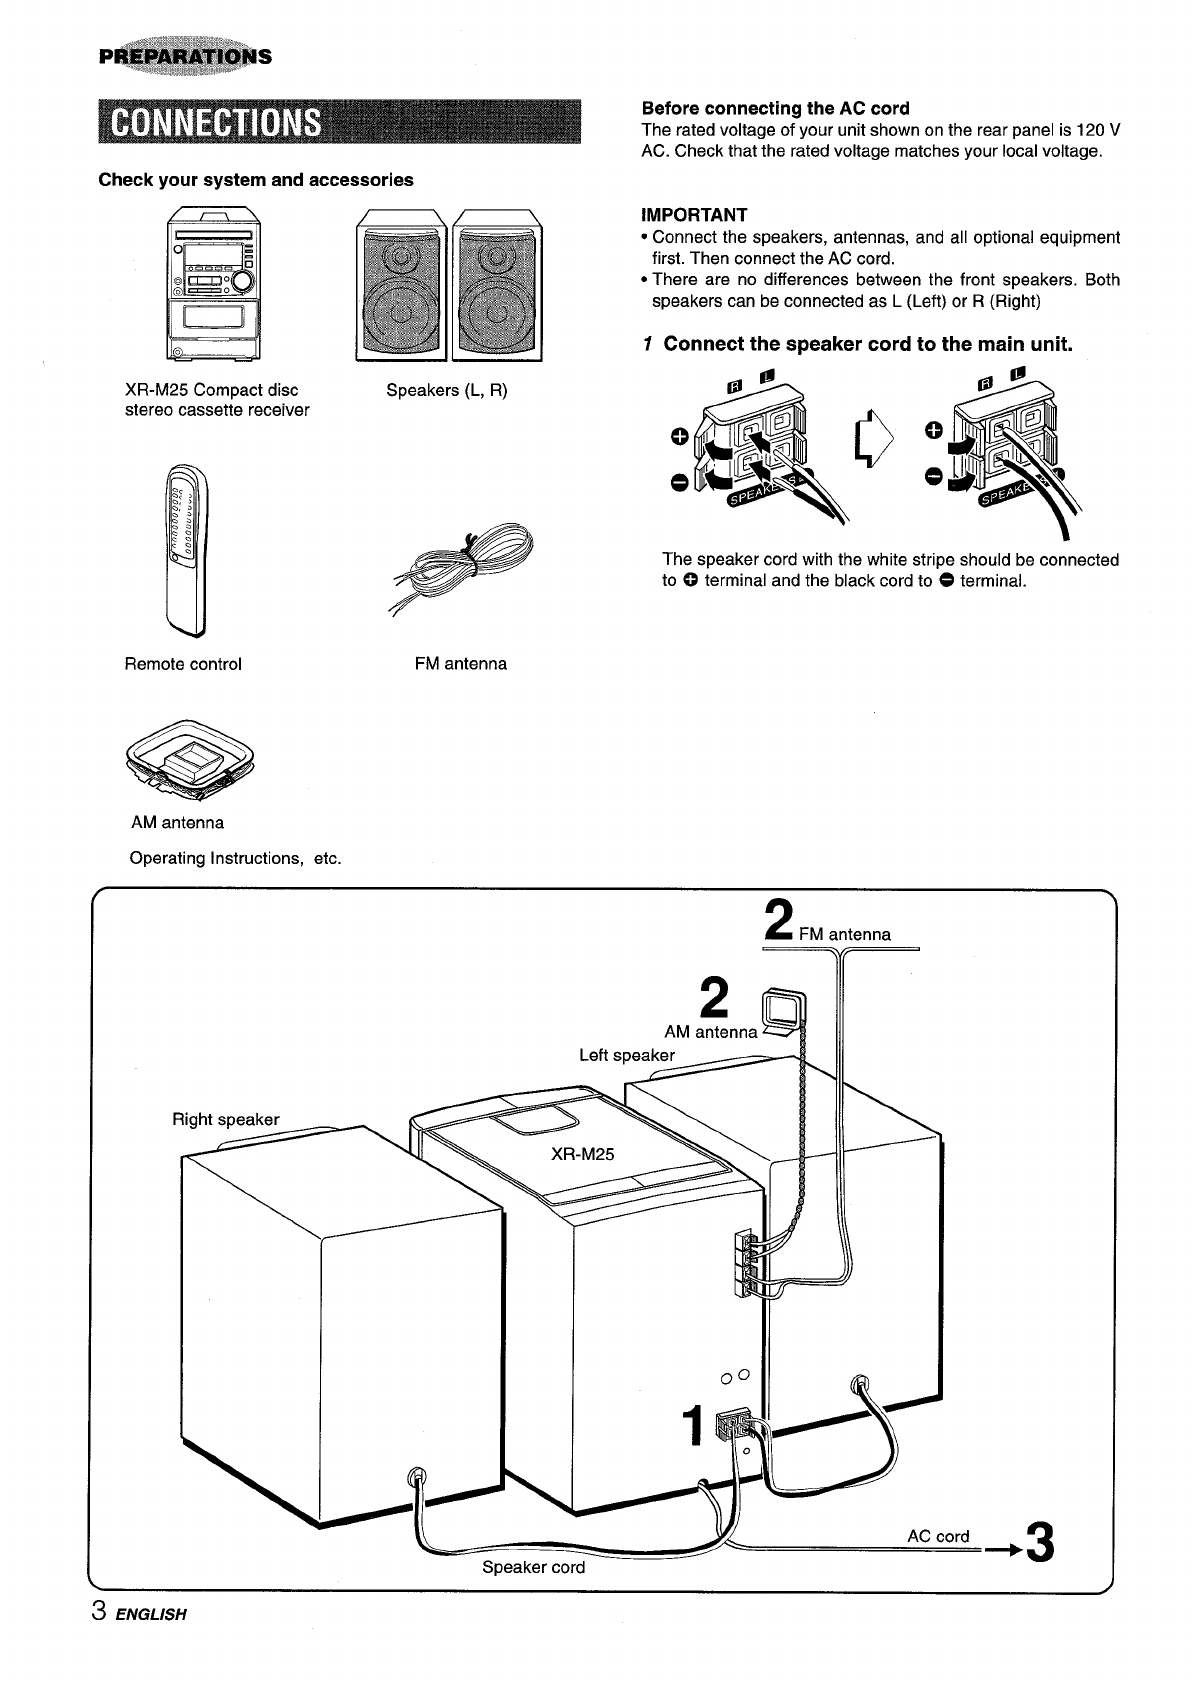 Page 4 of Aiwa Stereo System XM-M25 User Guide